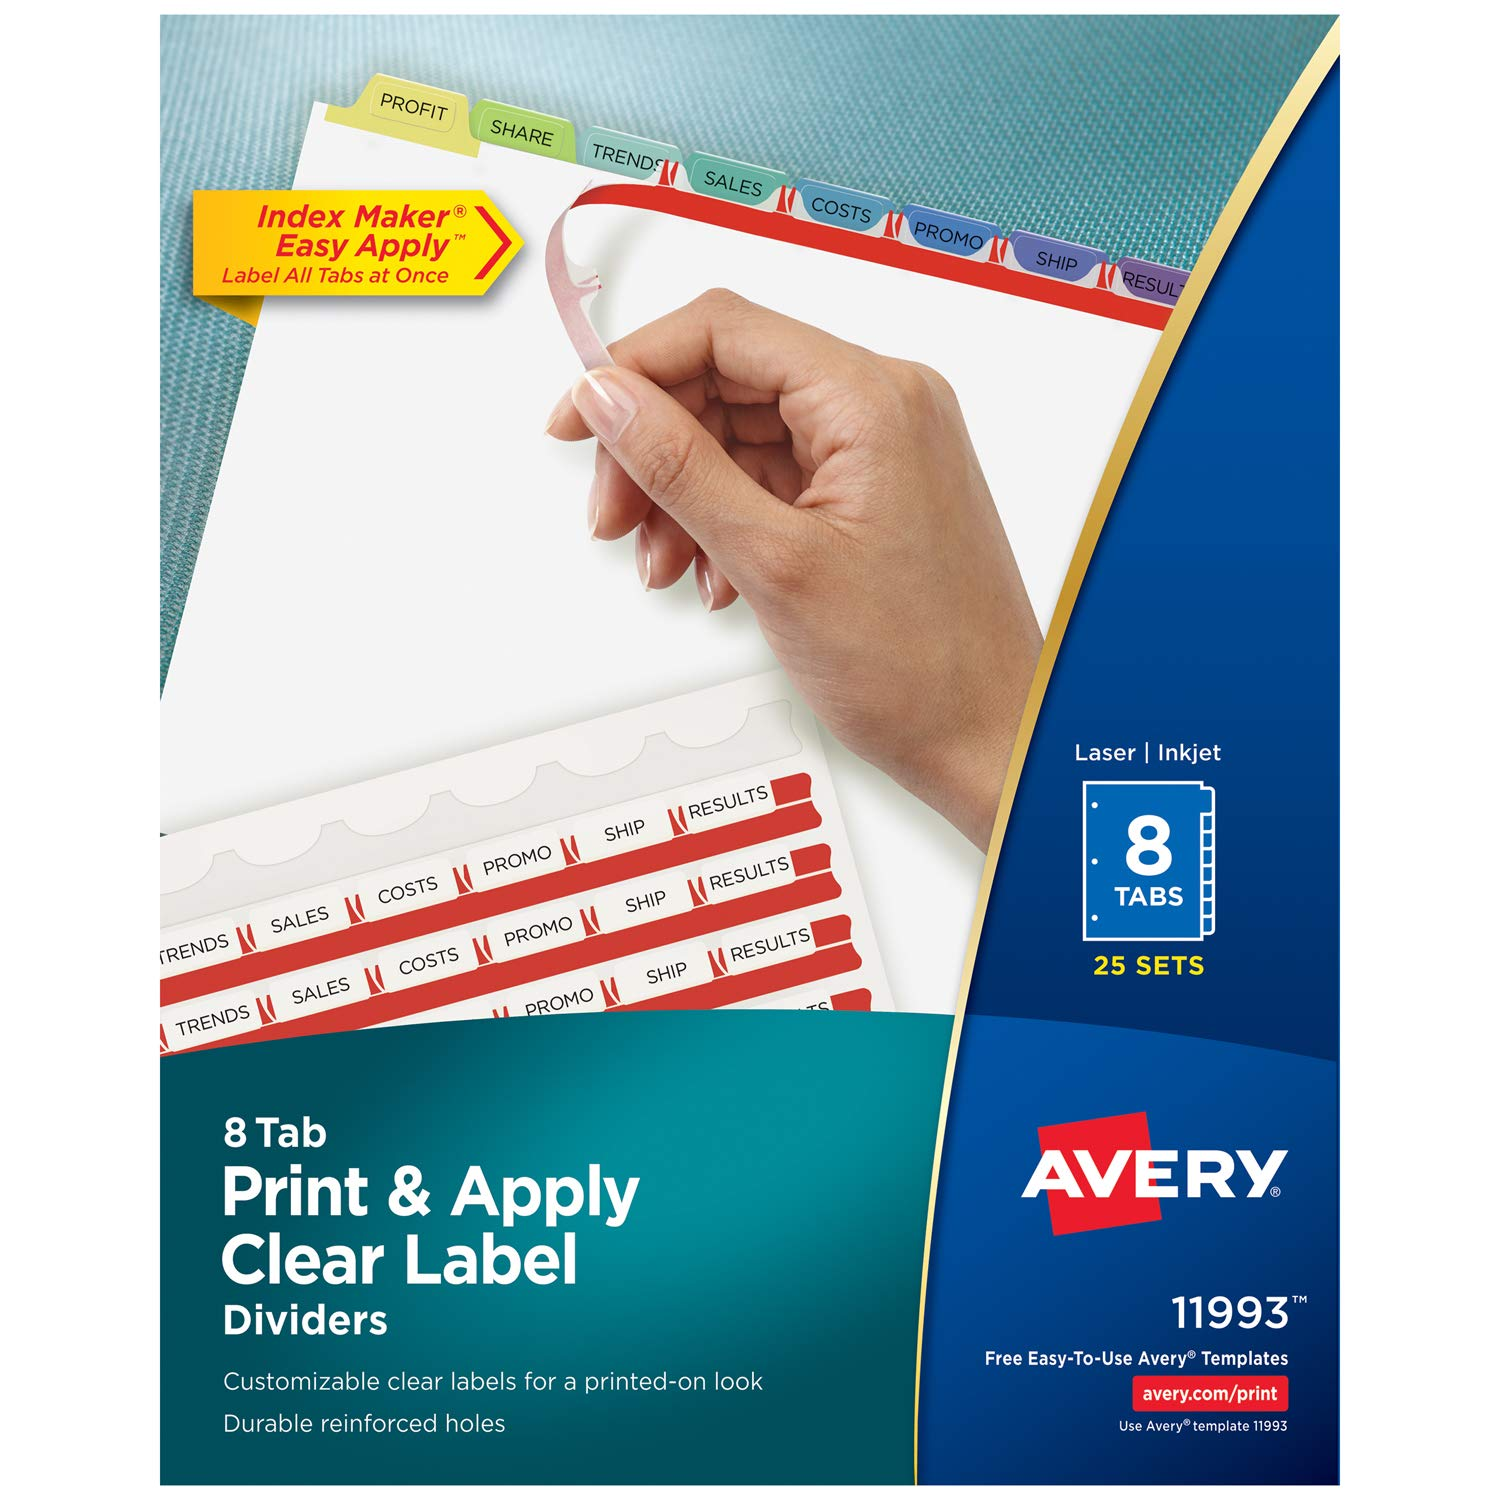 Avery 8-Tab Binder Dividers, Easy Print & Apply Clear Label Strip, Index Maker, Pastel Tabs, 25 Sets (11993)